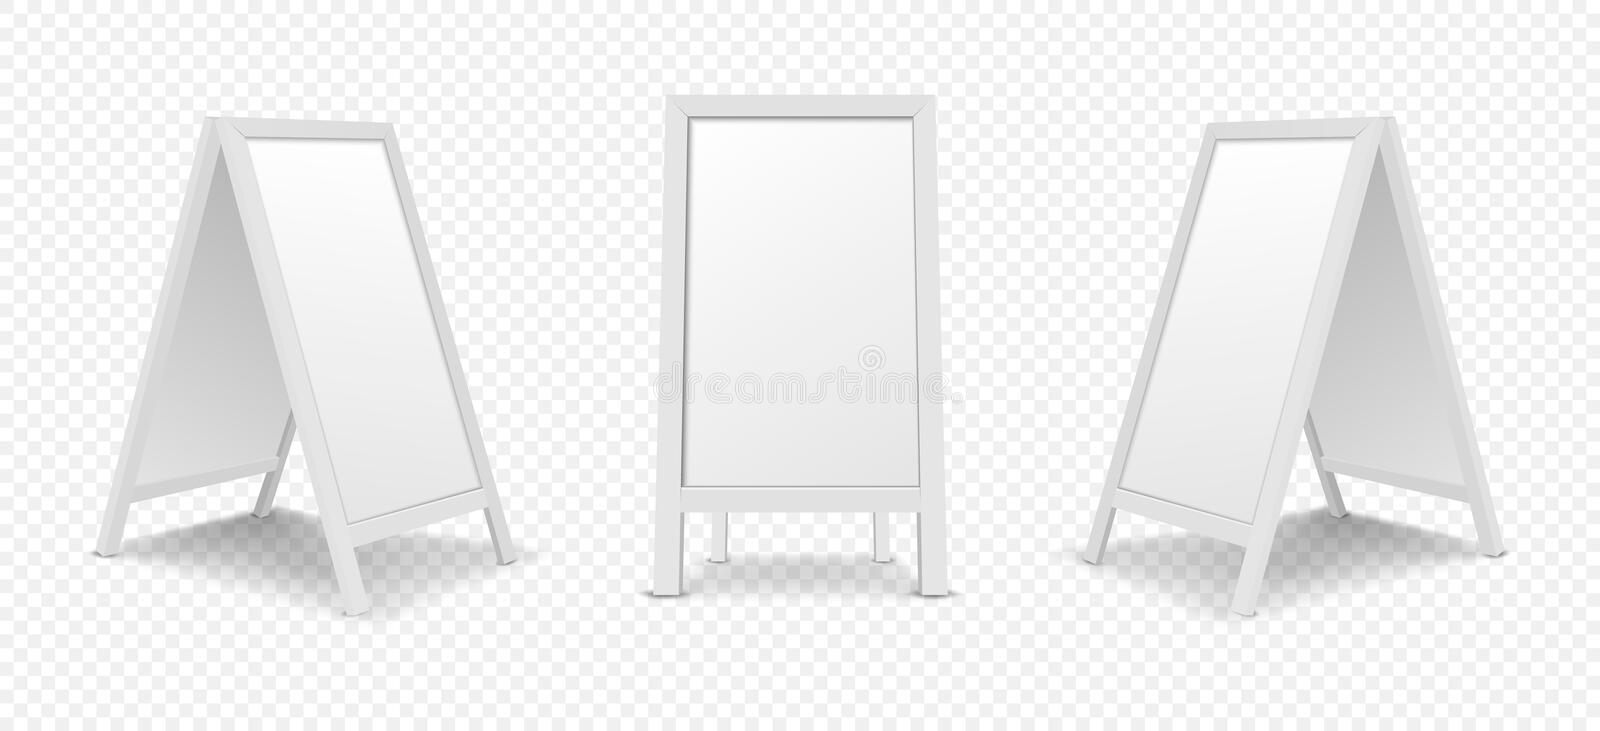 Realistic white menu announcement board icon set isolated royalty free illustration